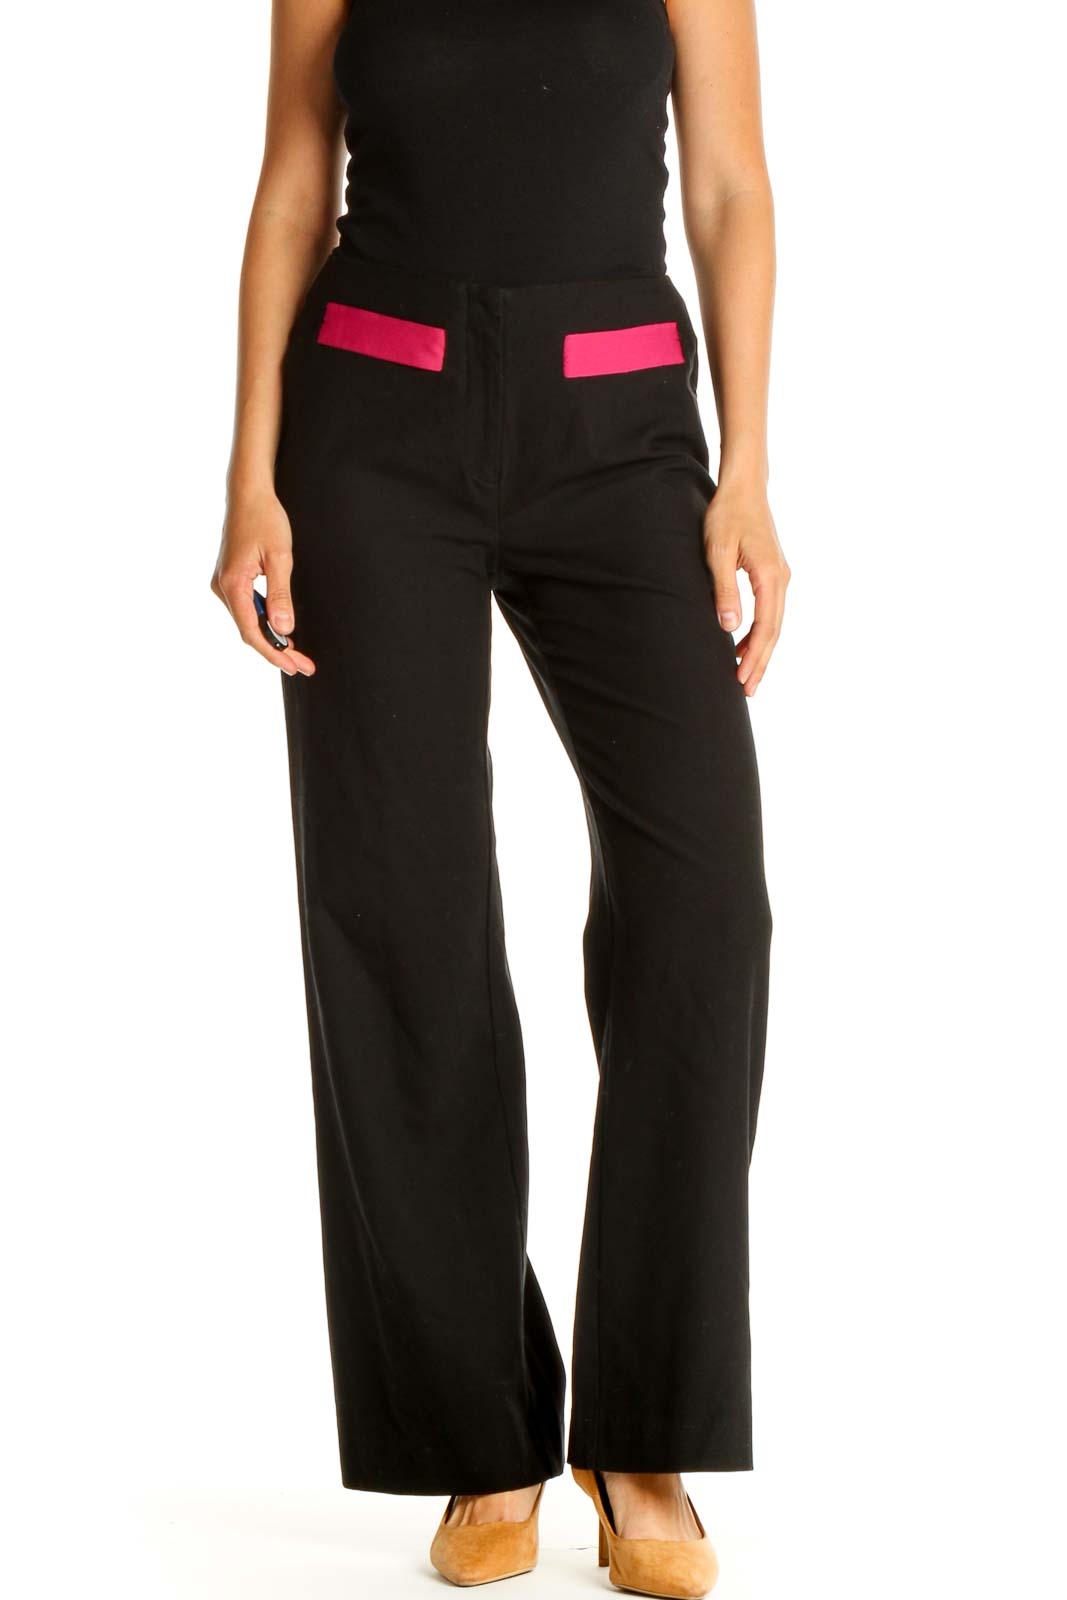 Black Solid Retro Trousers Front